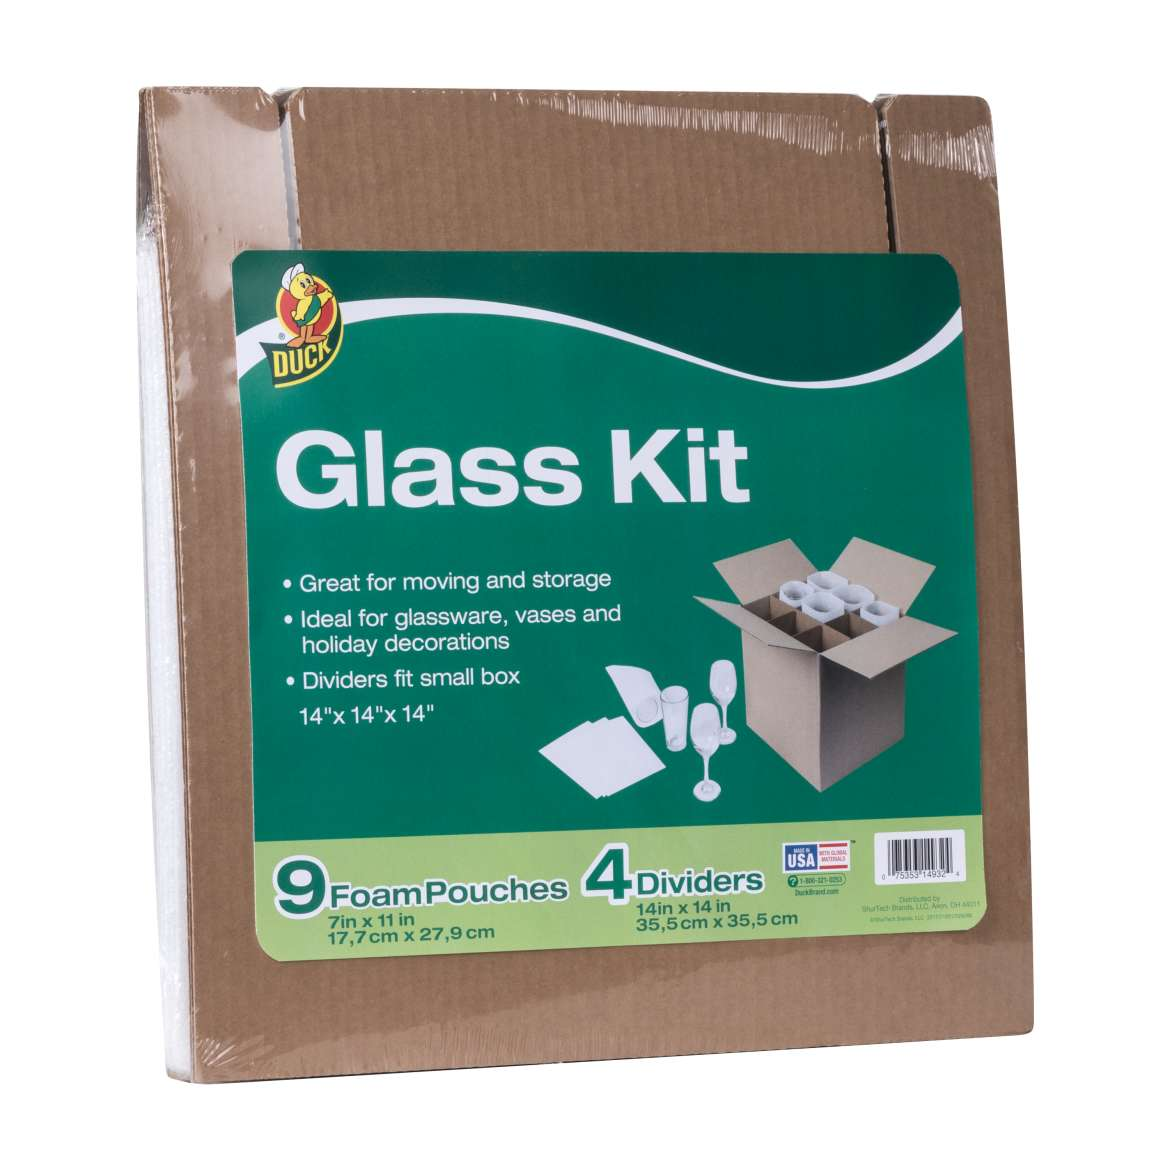 Duck Glass Kit, 4 Corrugate Dividers & 9 Foam Pouches (Box Not Included)